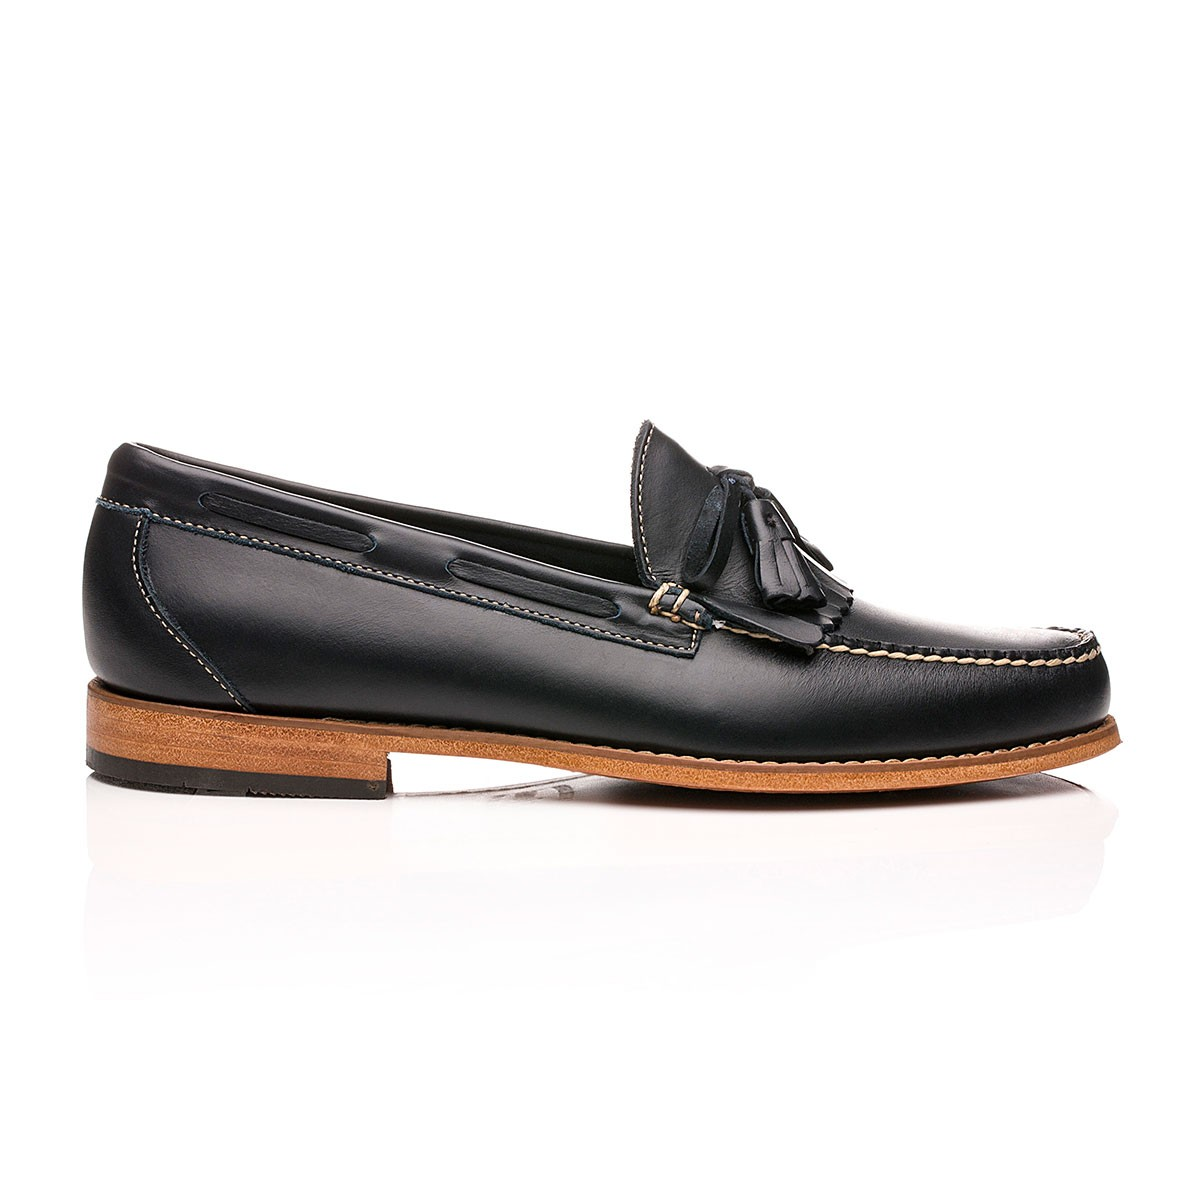 G.H. Bass & Co. Weejuns Layton Pull Up Kiltie Loafers Navy Leather